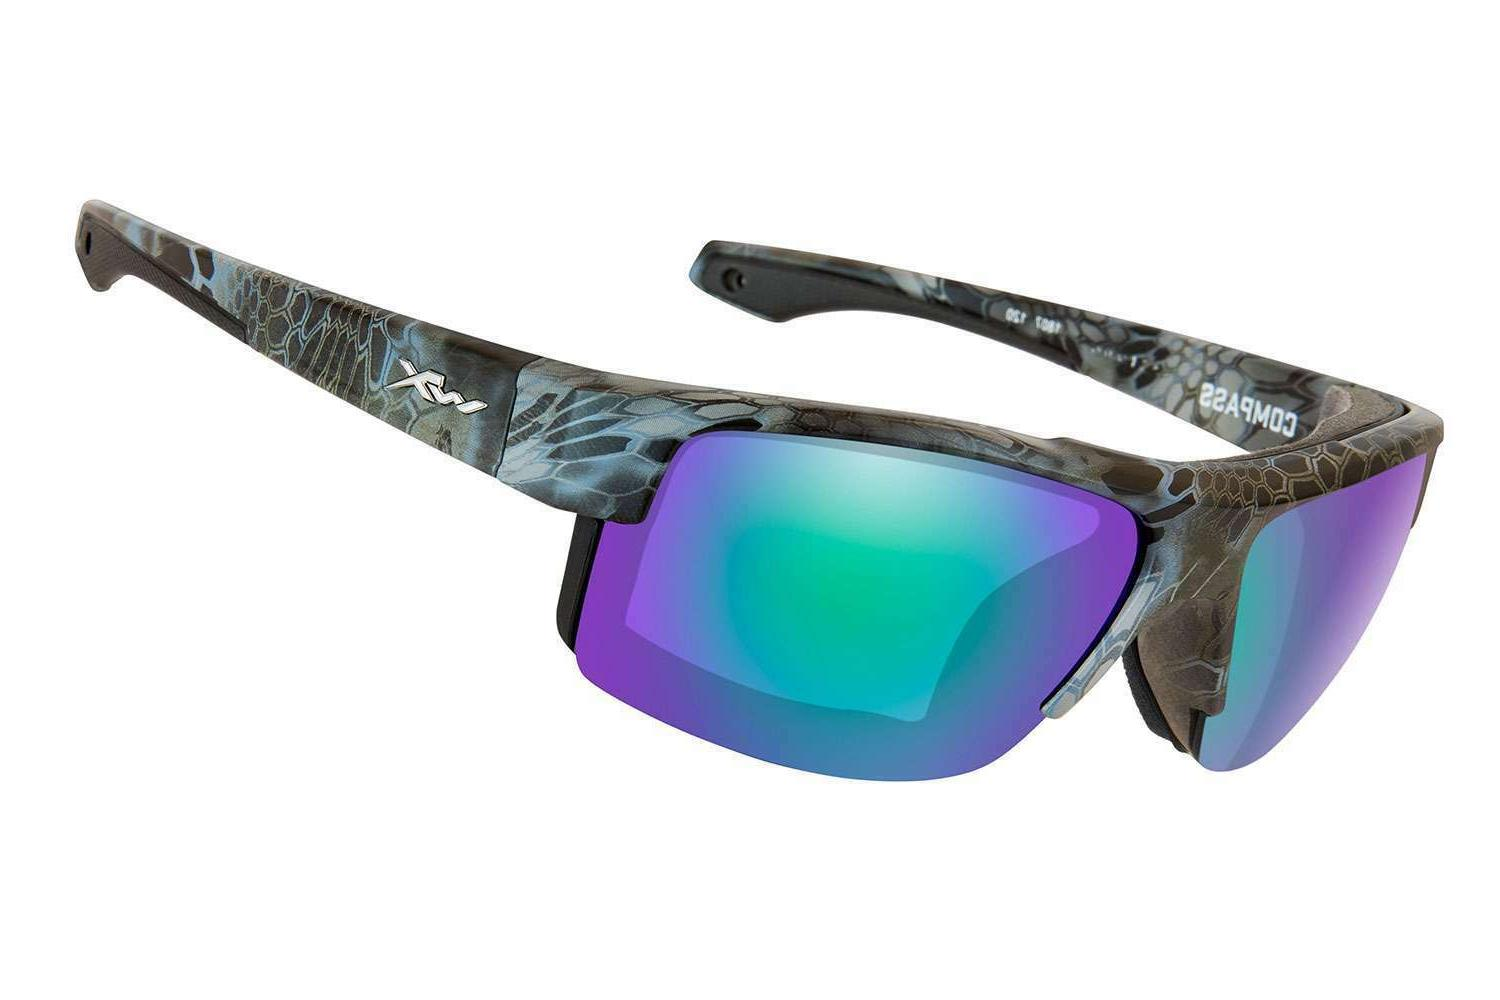 Kidz Banz Adventurer Sunglasses 100% UVA UVB Sun Protection